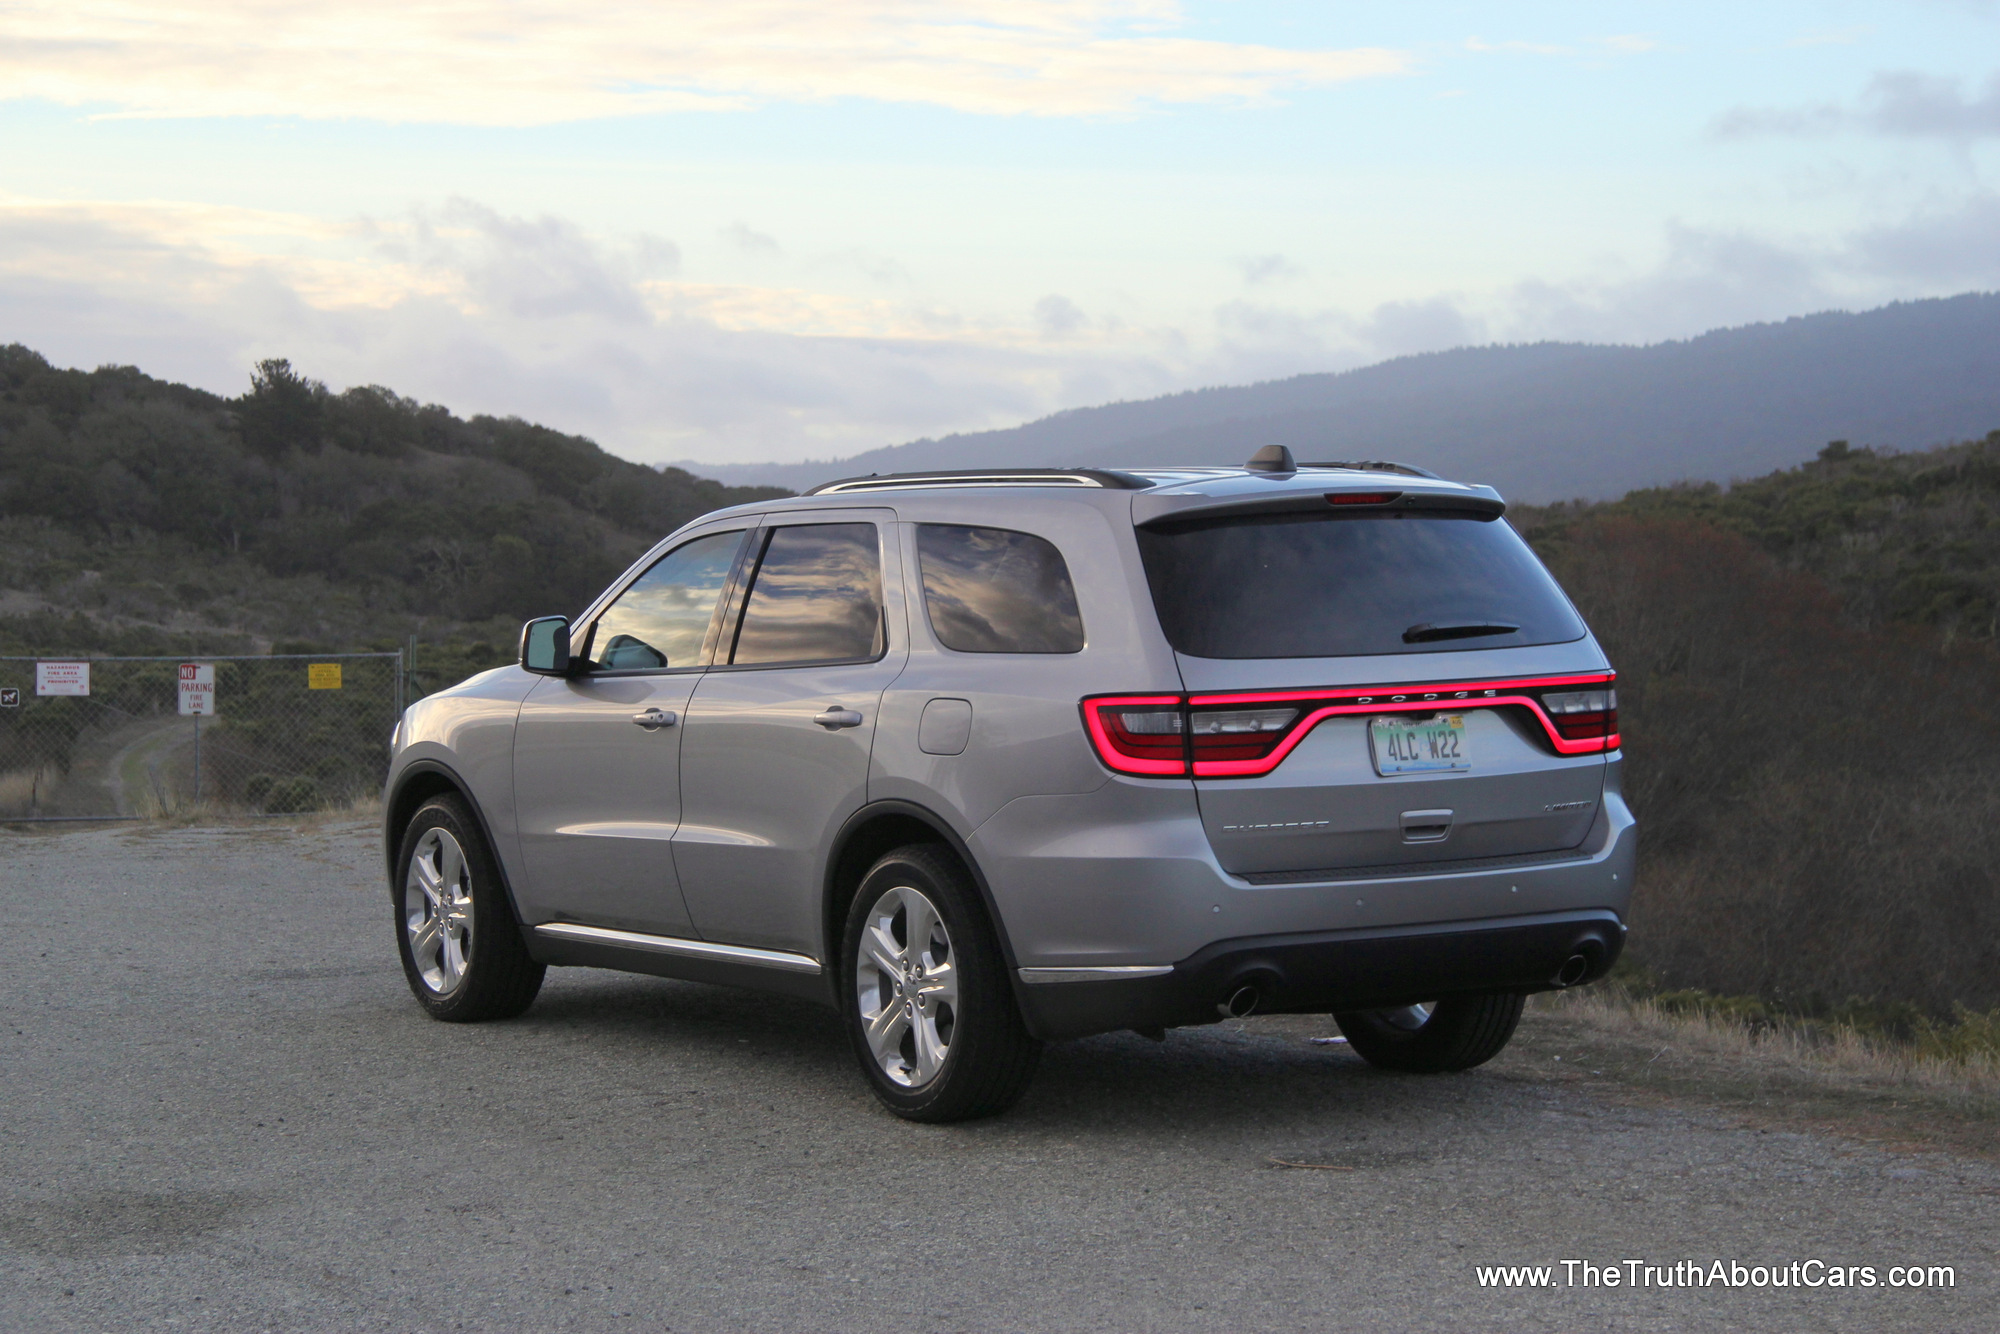 Mercedes V8 Biturbo >> Review: 2014 Dodge Durango Limited V8 (with Video) - The Truth About Cars